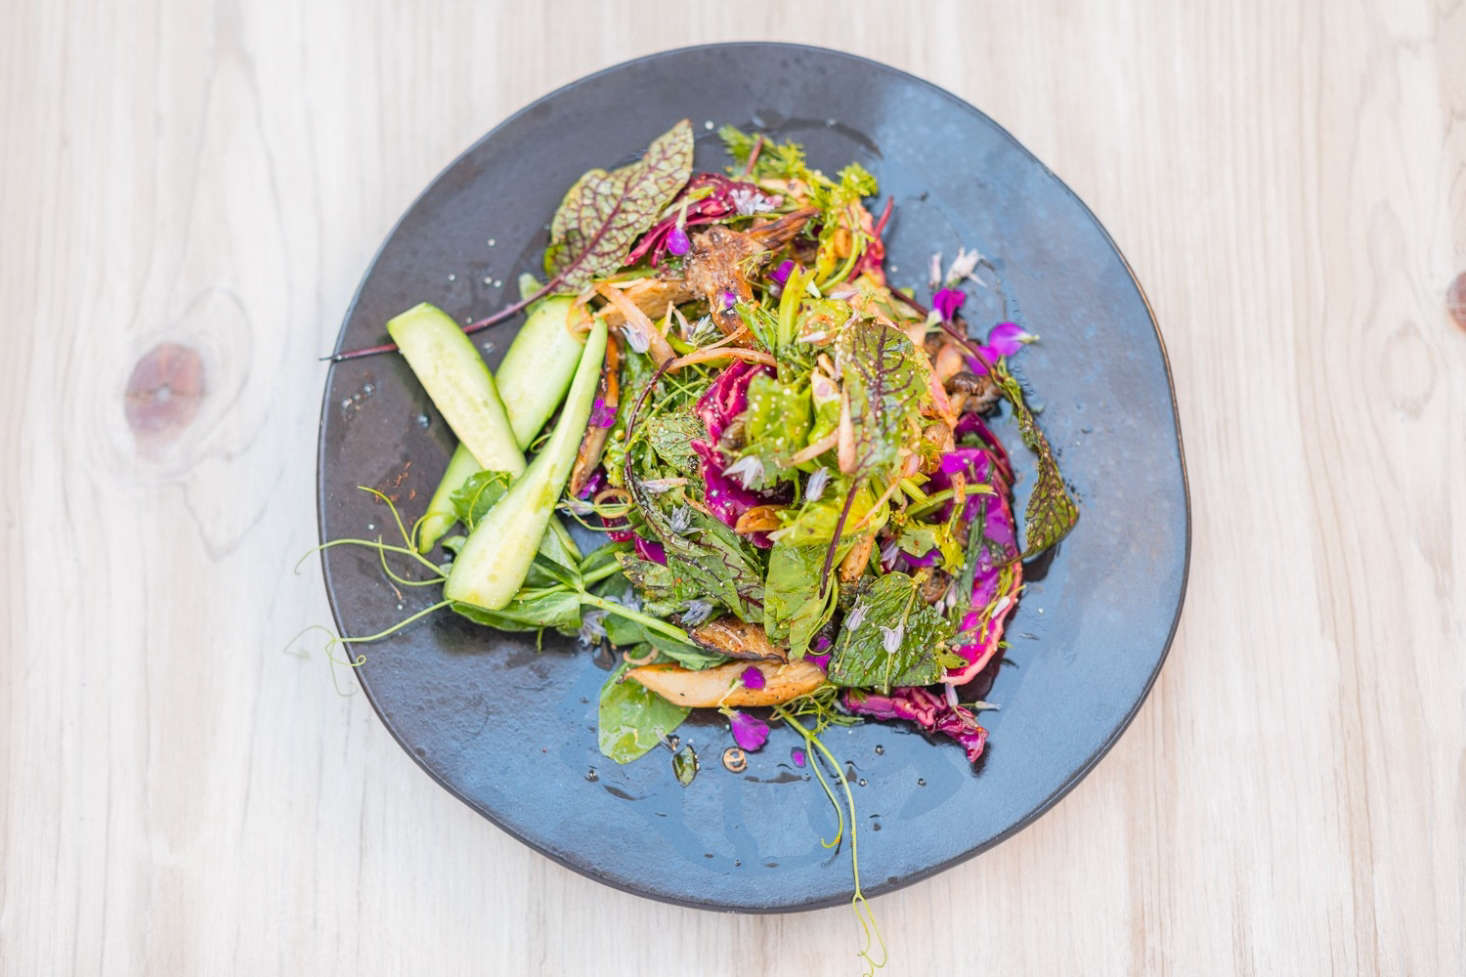 """""""We're big into color and flavor; we're not into rules,"""" Sperling and Fiffer say on their website. On the ever-changing menuare bowls and salads with garden-fresh ingredients like charred leeks, pea tendrils, and cilantro flowers. The duo selected the tableware themselves."""